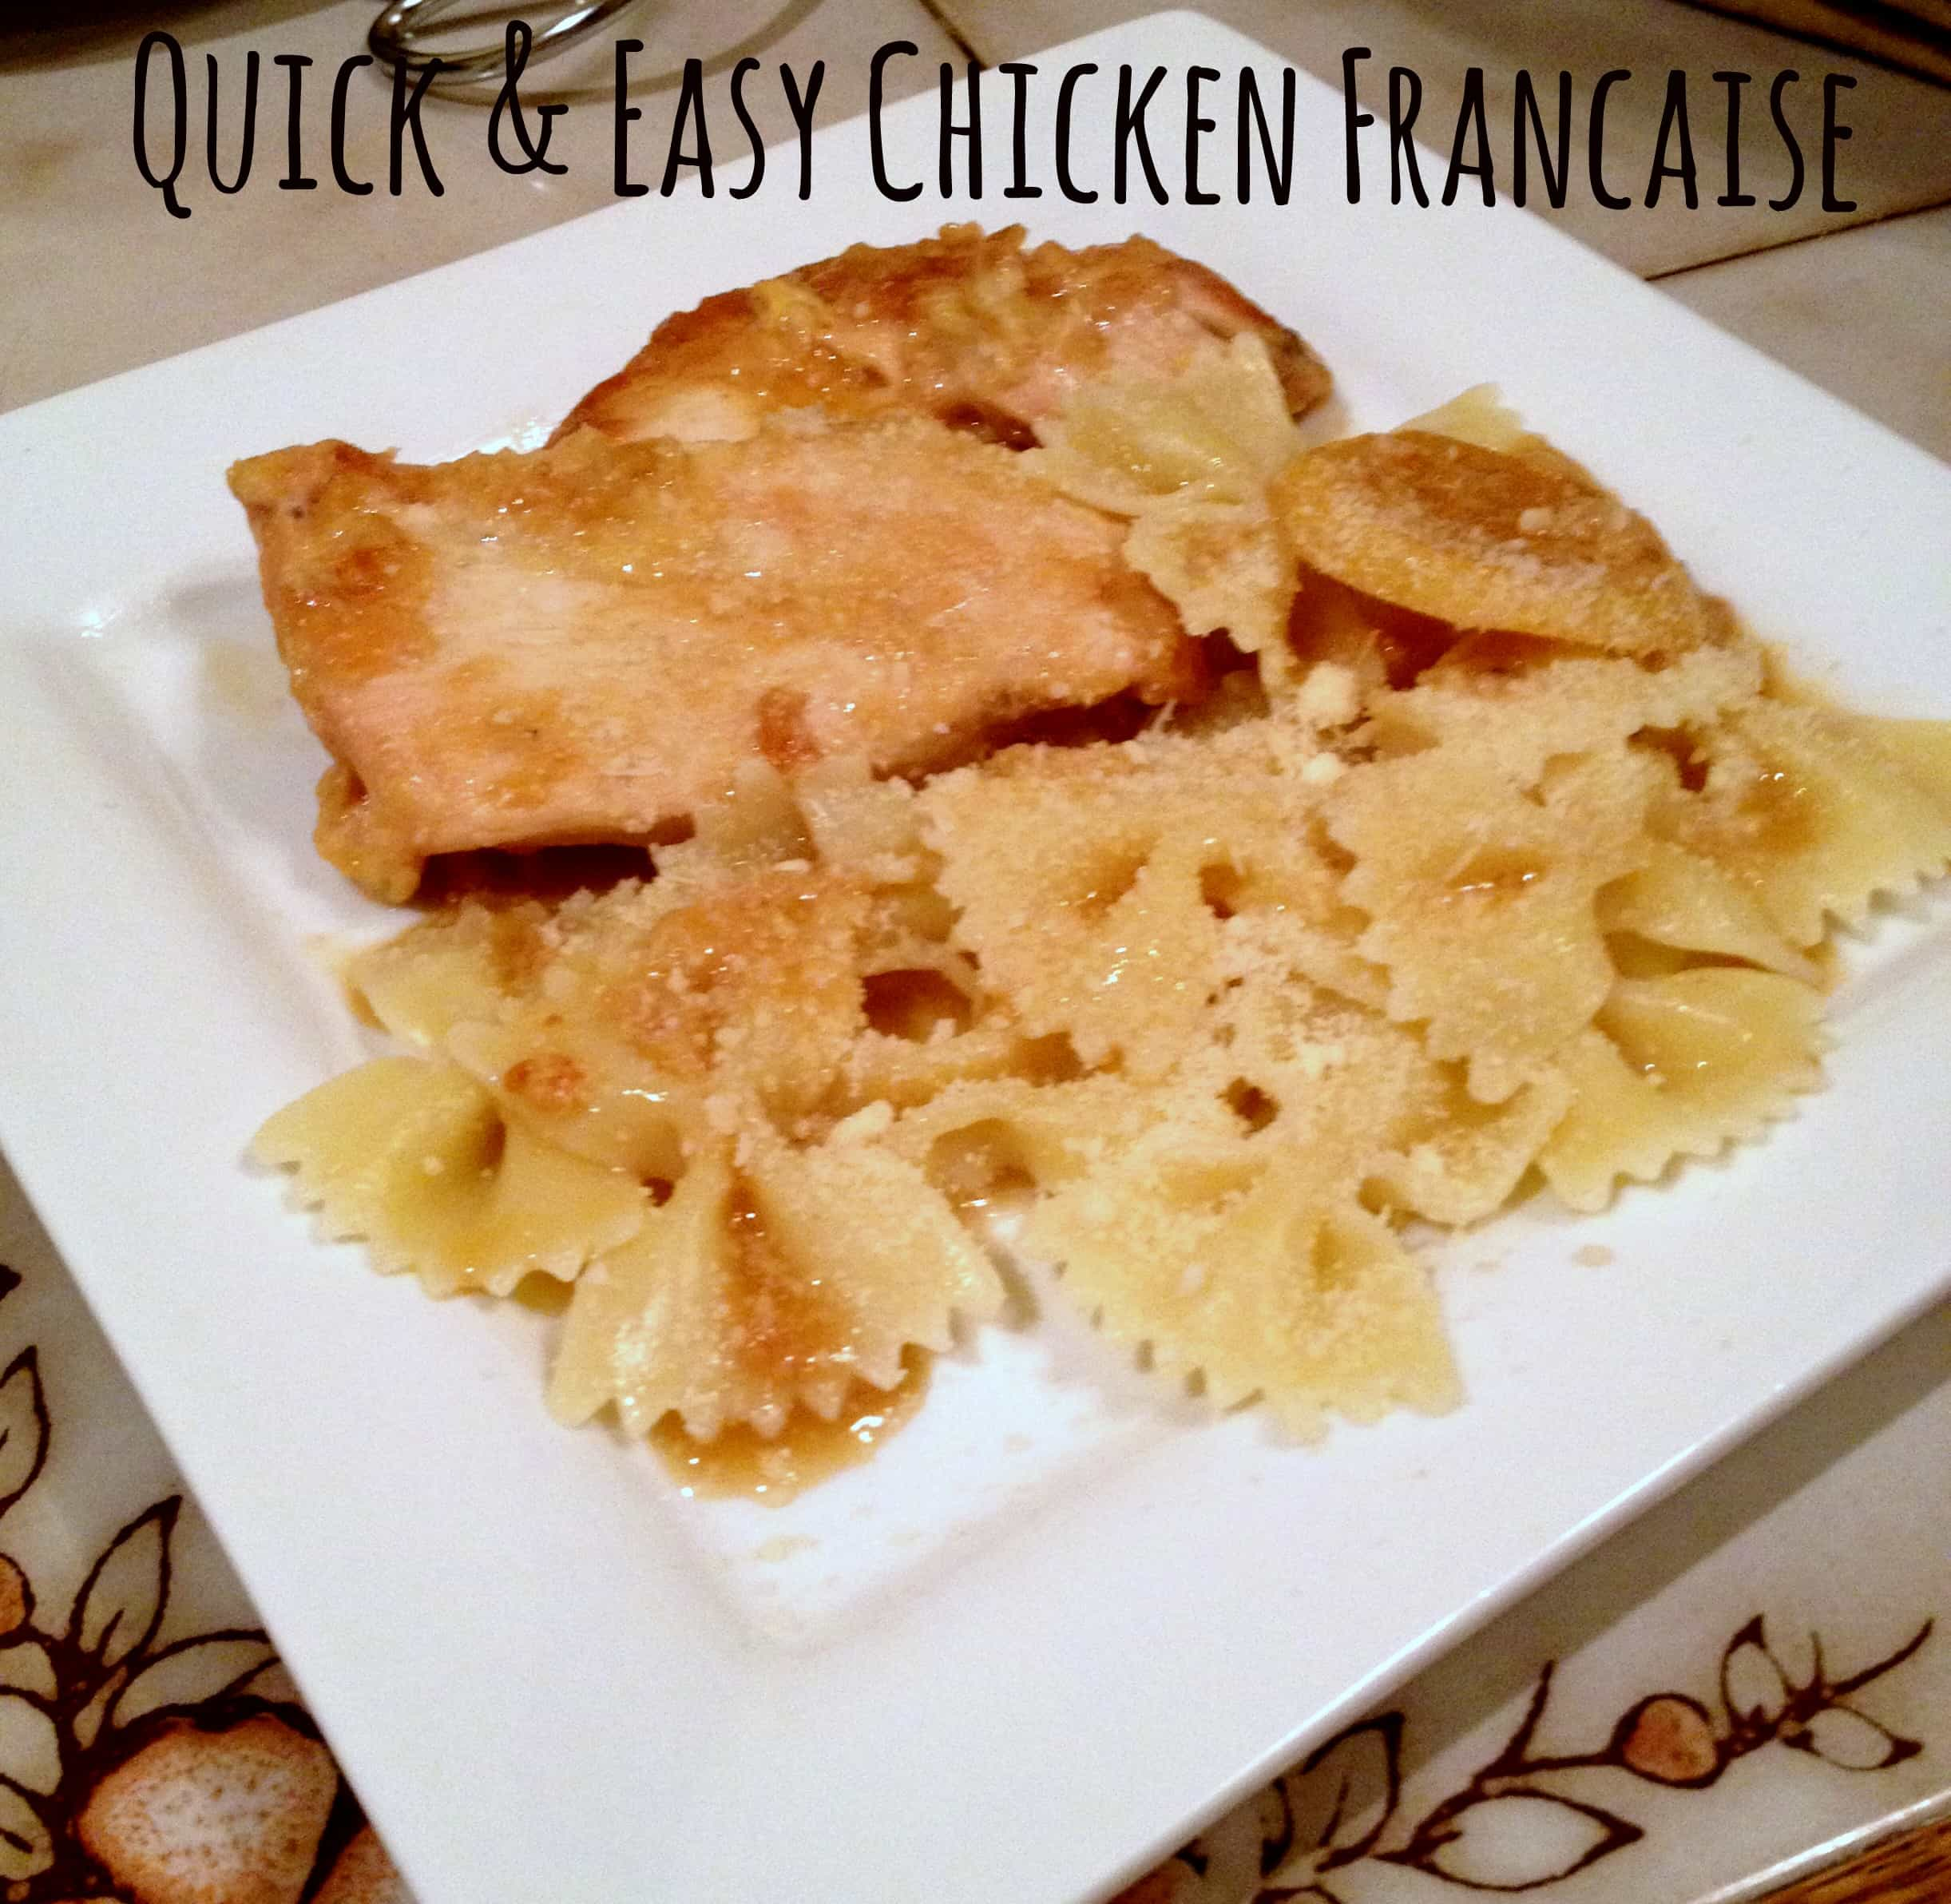 Quick and Easy Chicken Francaise